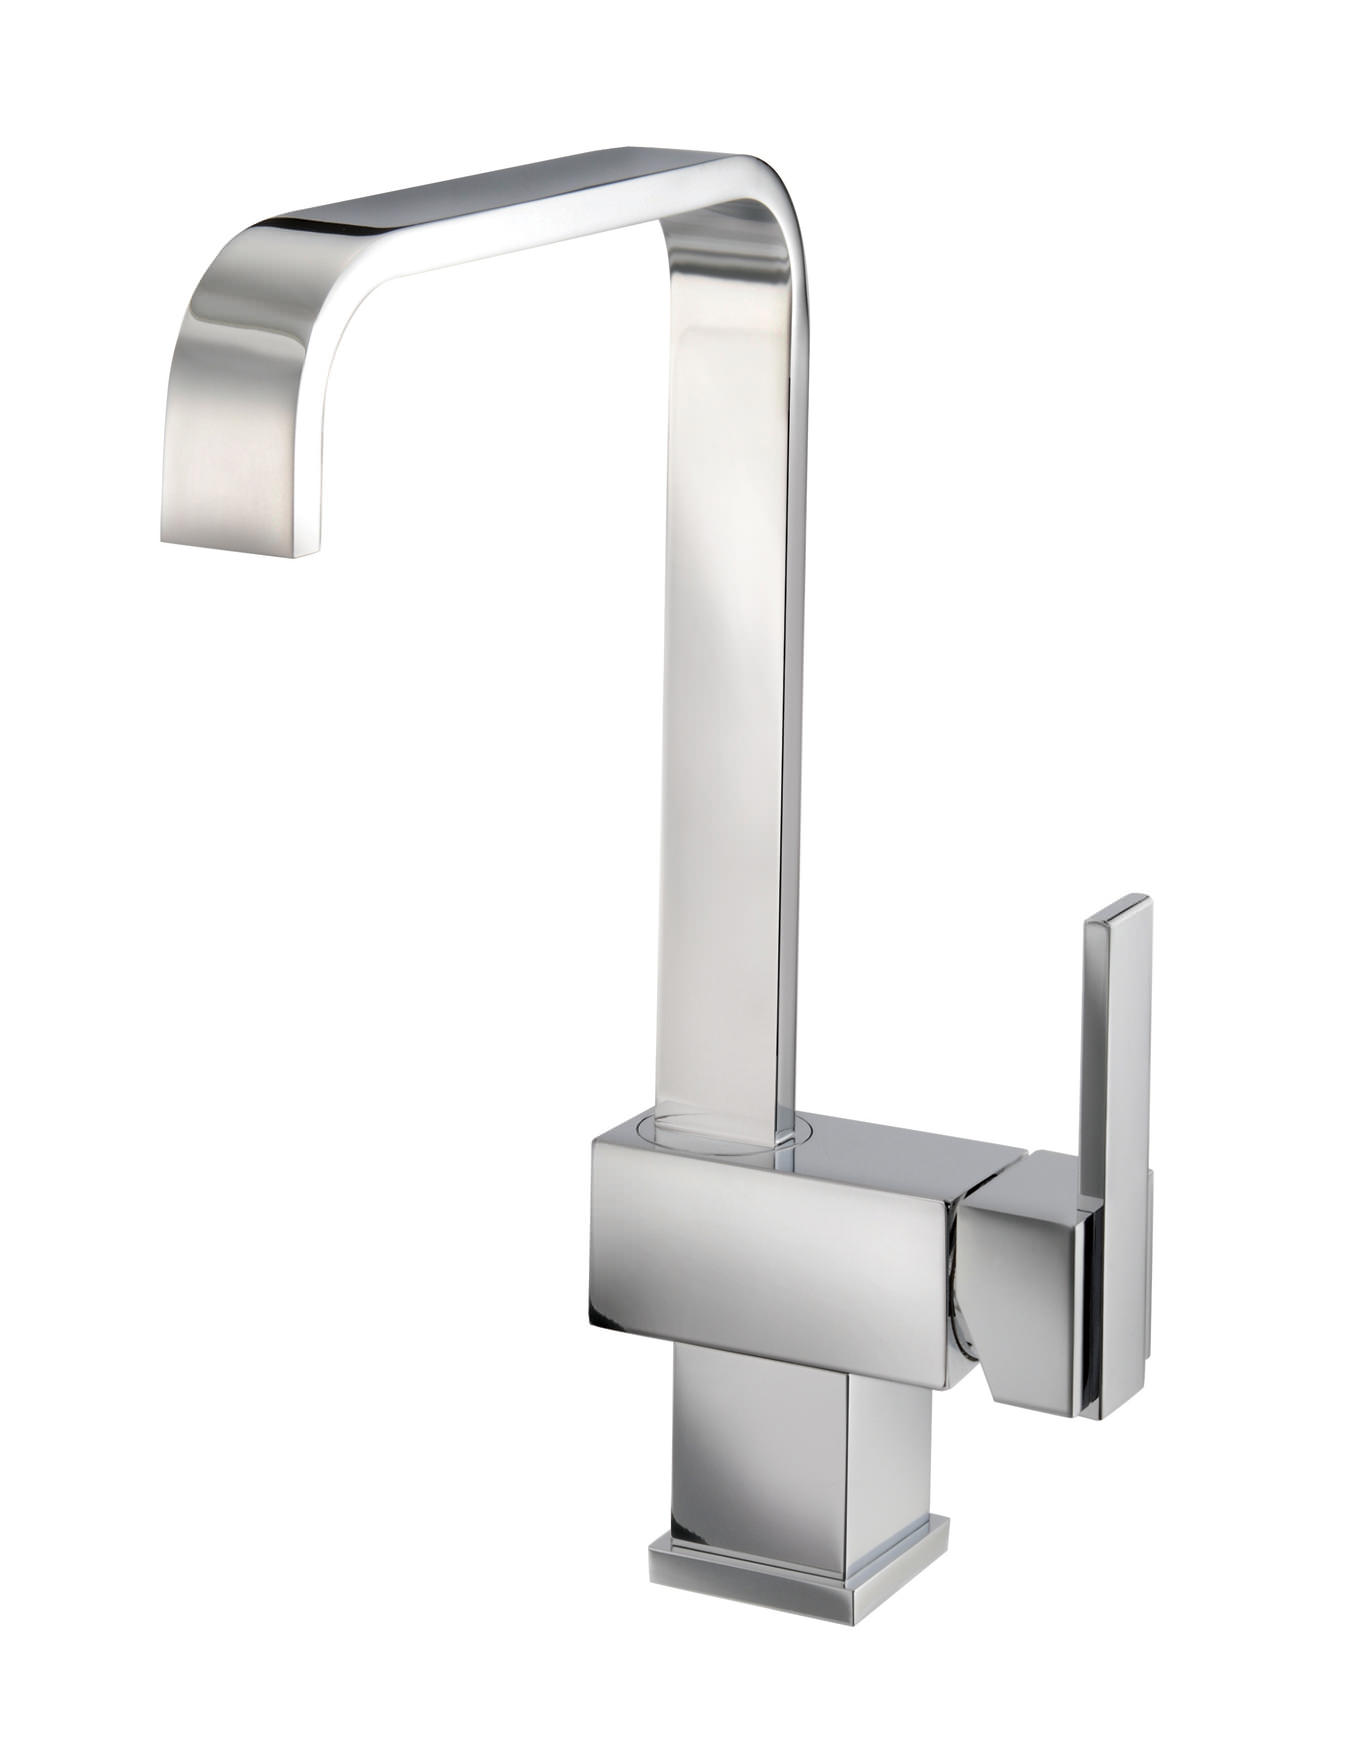 kitchen tap small white sinks mayfair mixer taps qs supplies flow monobloc with side lever